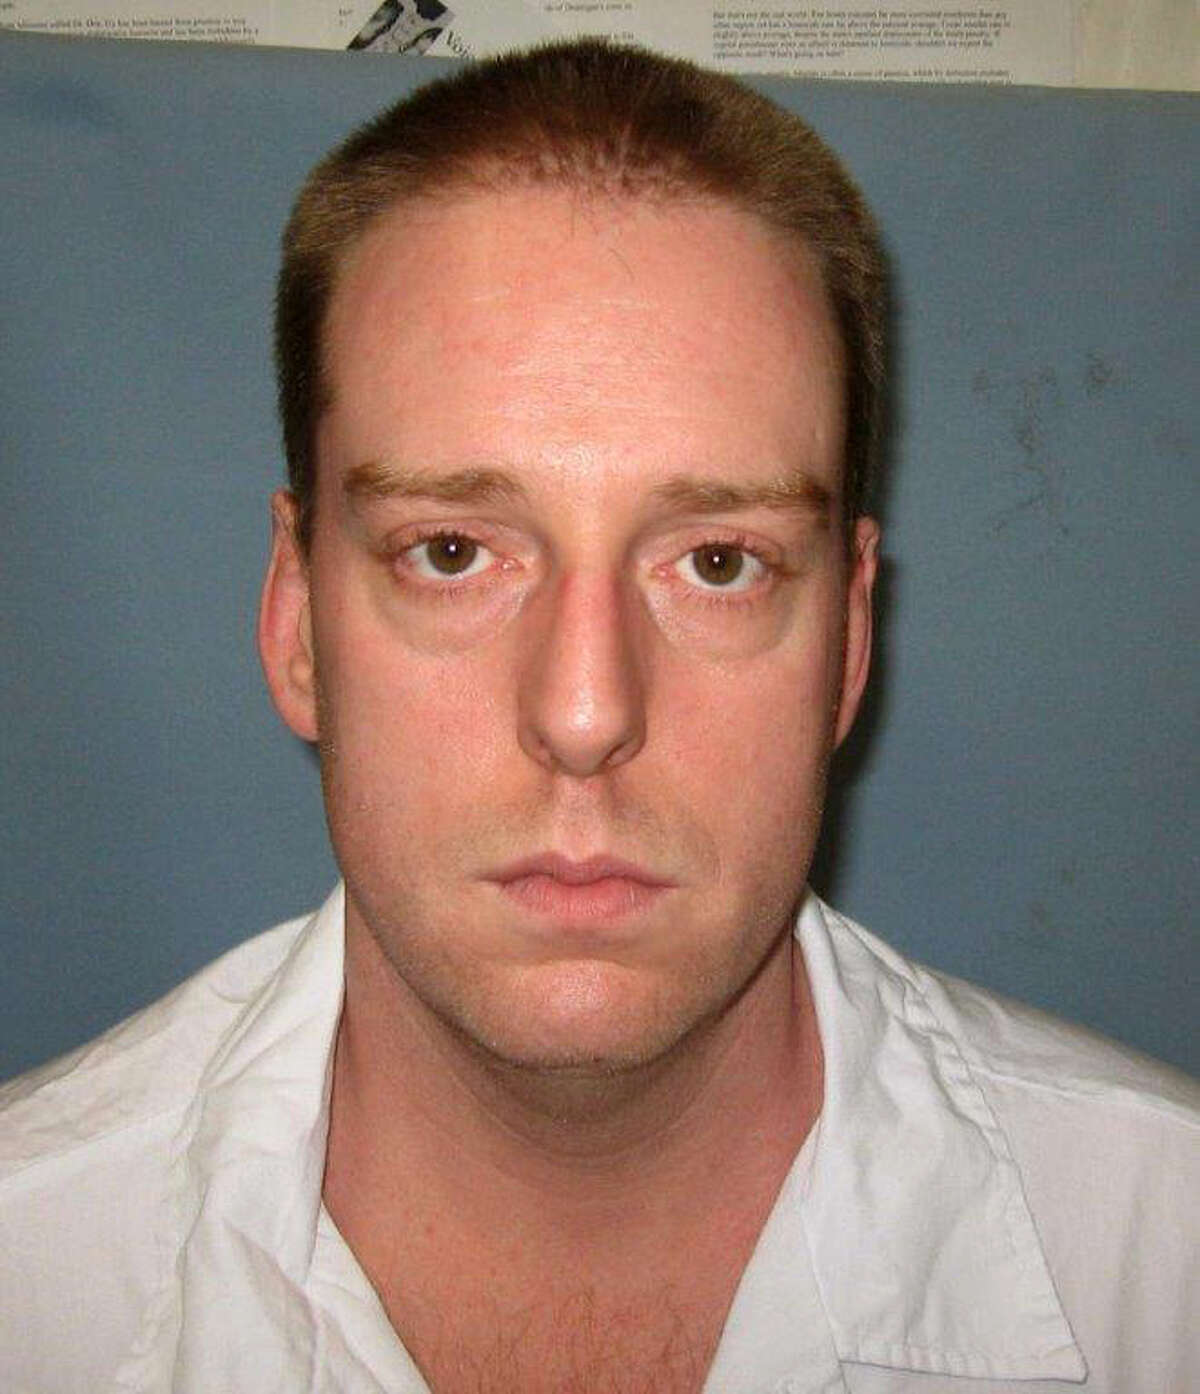 FILE - This undated photo provided by the Alabama Department of Corrections shows Ronald Bert Smith Jr.. Smith Jr., an Alabama inmate coughed repeatedly and his upper body heaved for at least 13 minutes during an execution, Thursday, Dec. 8, 2016, using a drug that has previously been used in problematic lethal injections in at least three other states. (Alabama Department of Corrections via AP, File)